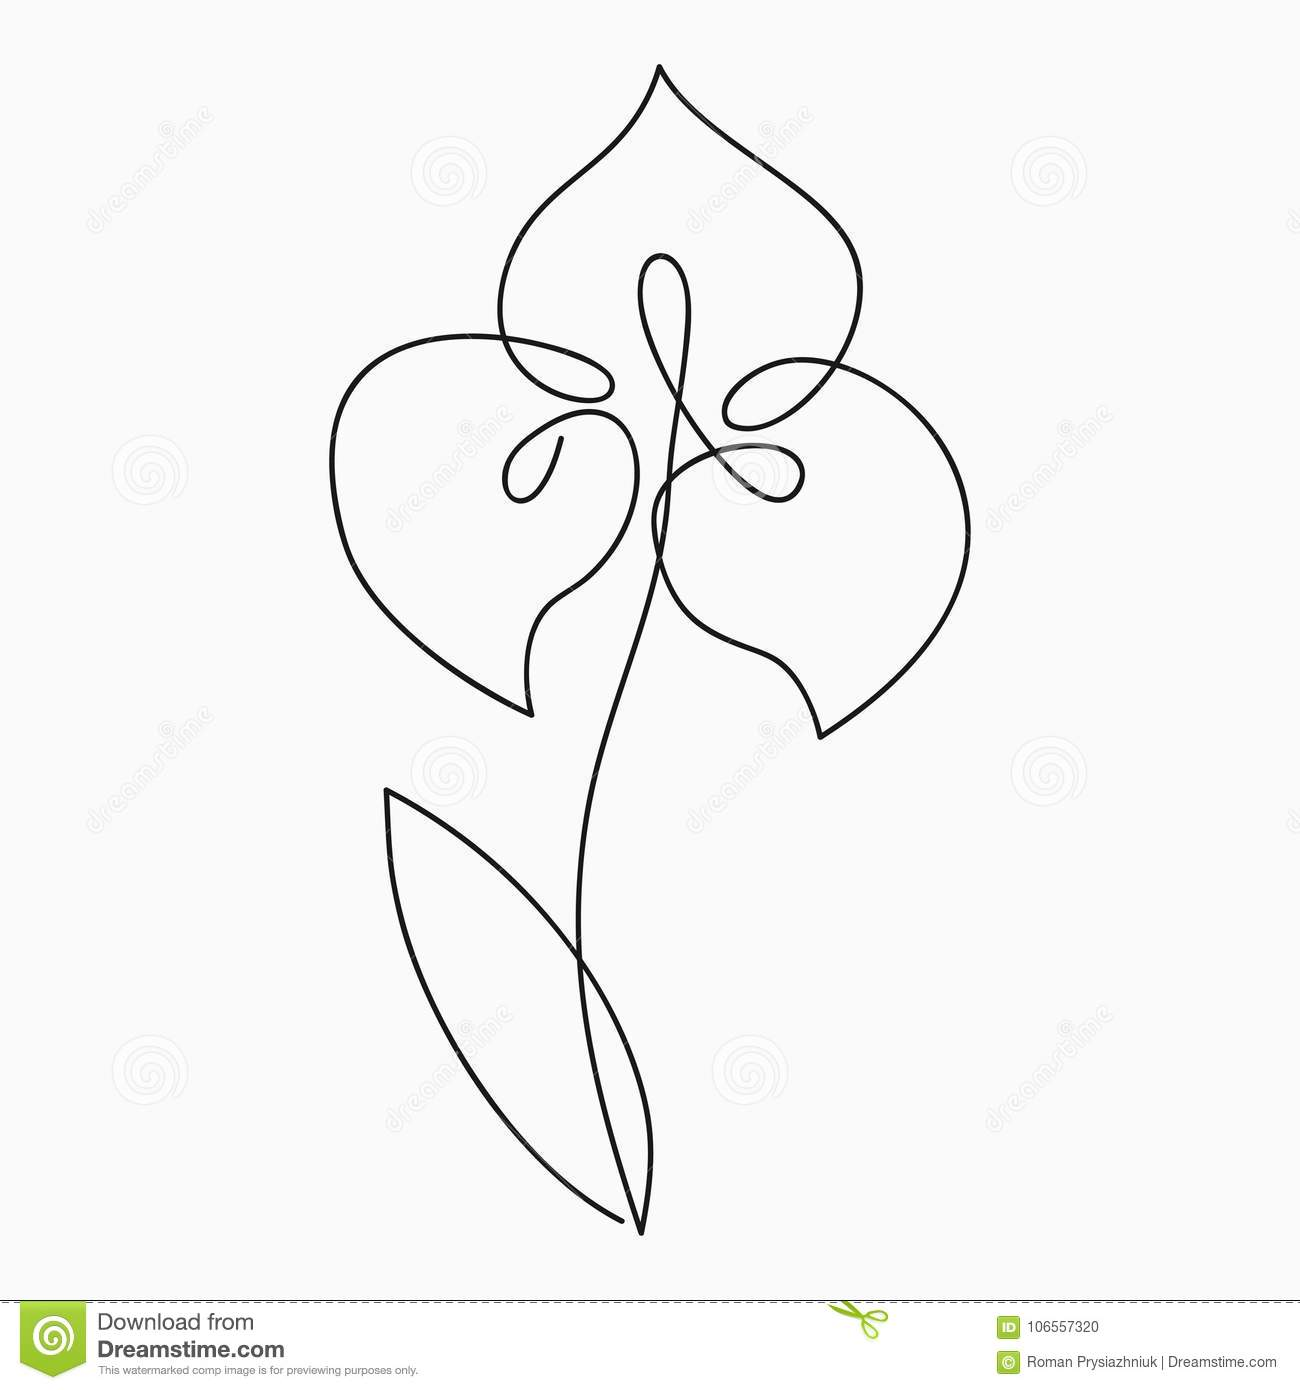 Iris One Line Drawing. Continuous Line Flower. Hand-drawn